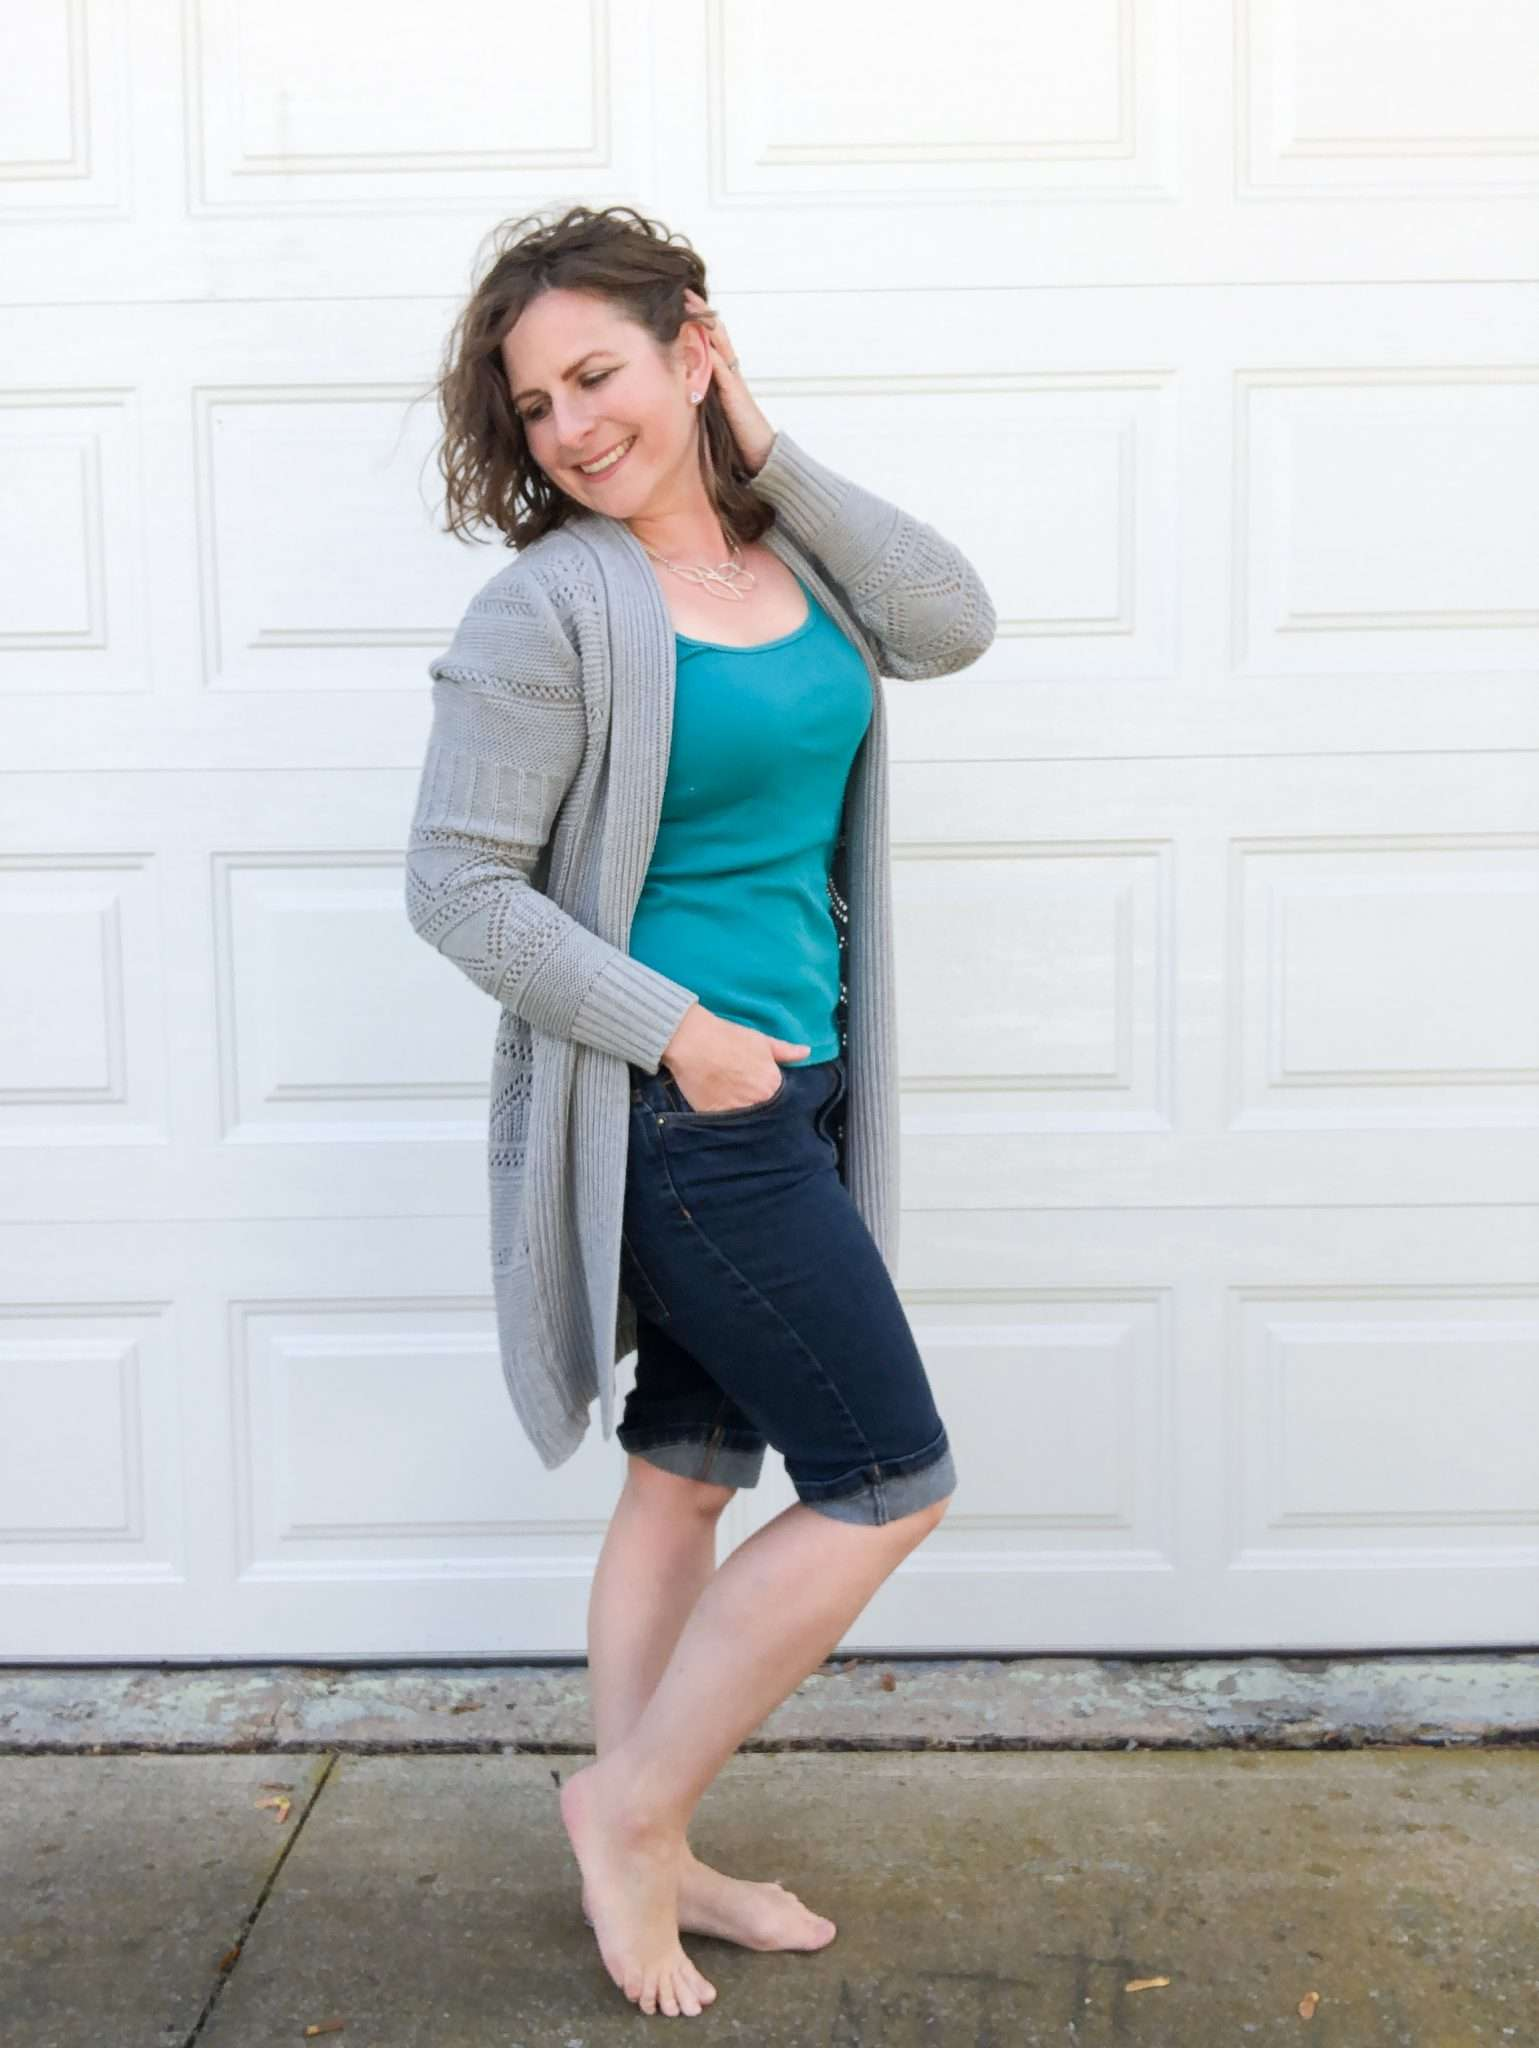 Cute Comfy Casual Outfit Idea for What to Wear At Home Around the House - Denim Shorts, Color Tee, Neutral Long Cardigan, Cute spring outfit